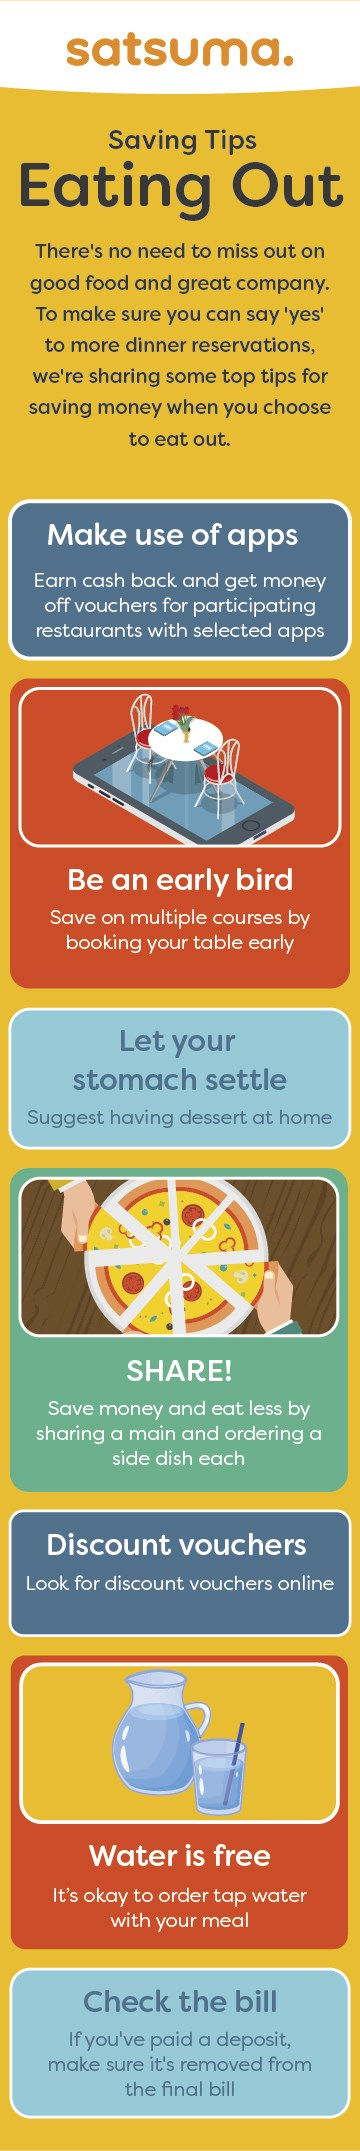 A graphic showing some top tips on how to save when eating out